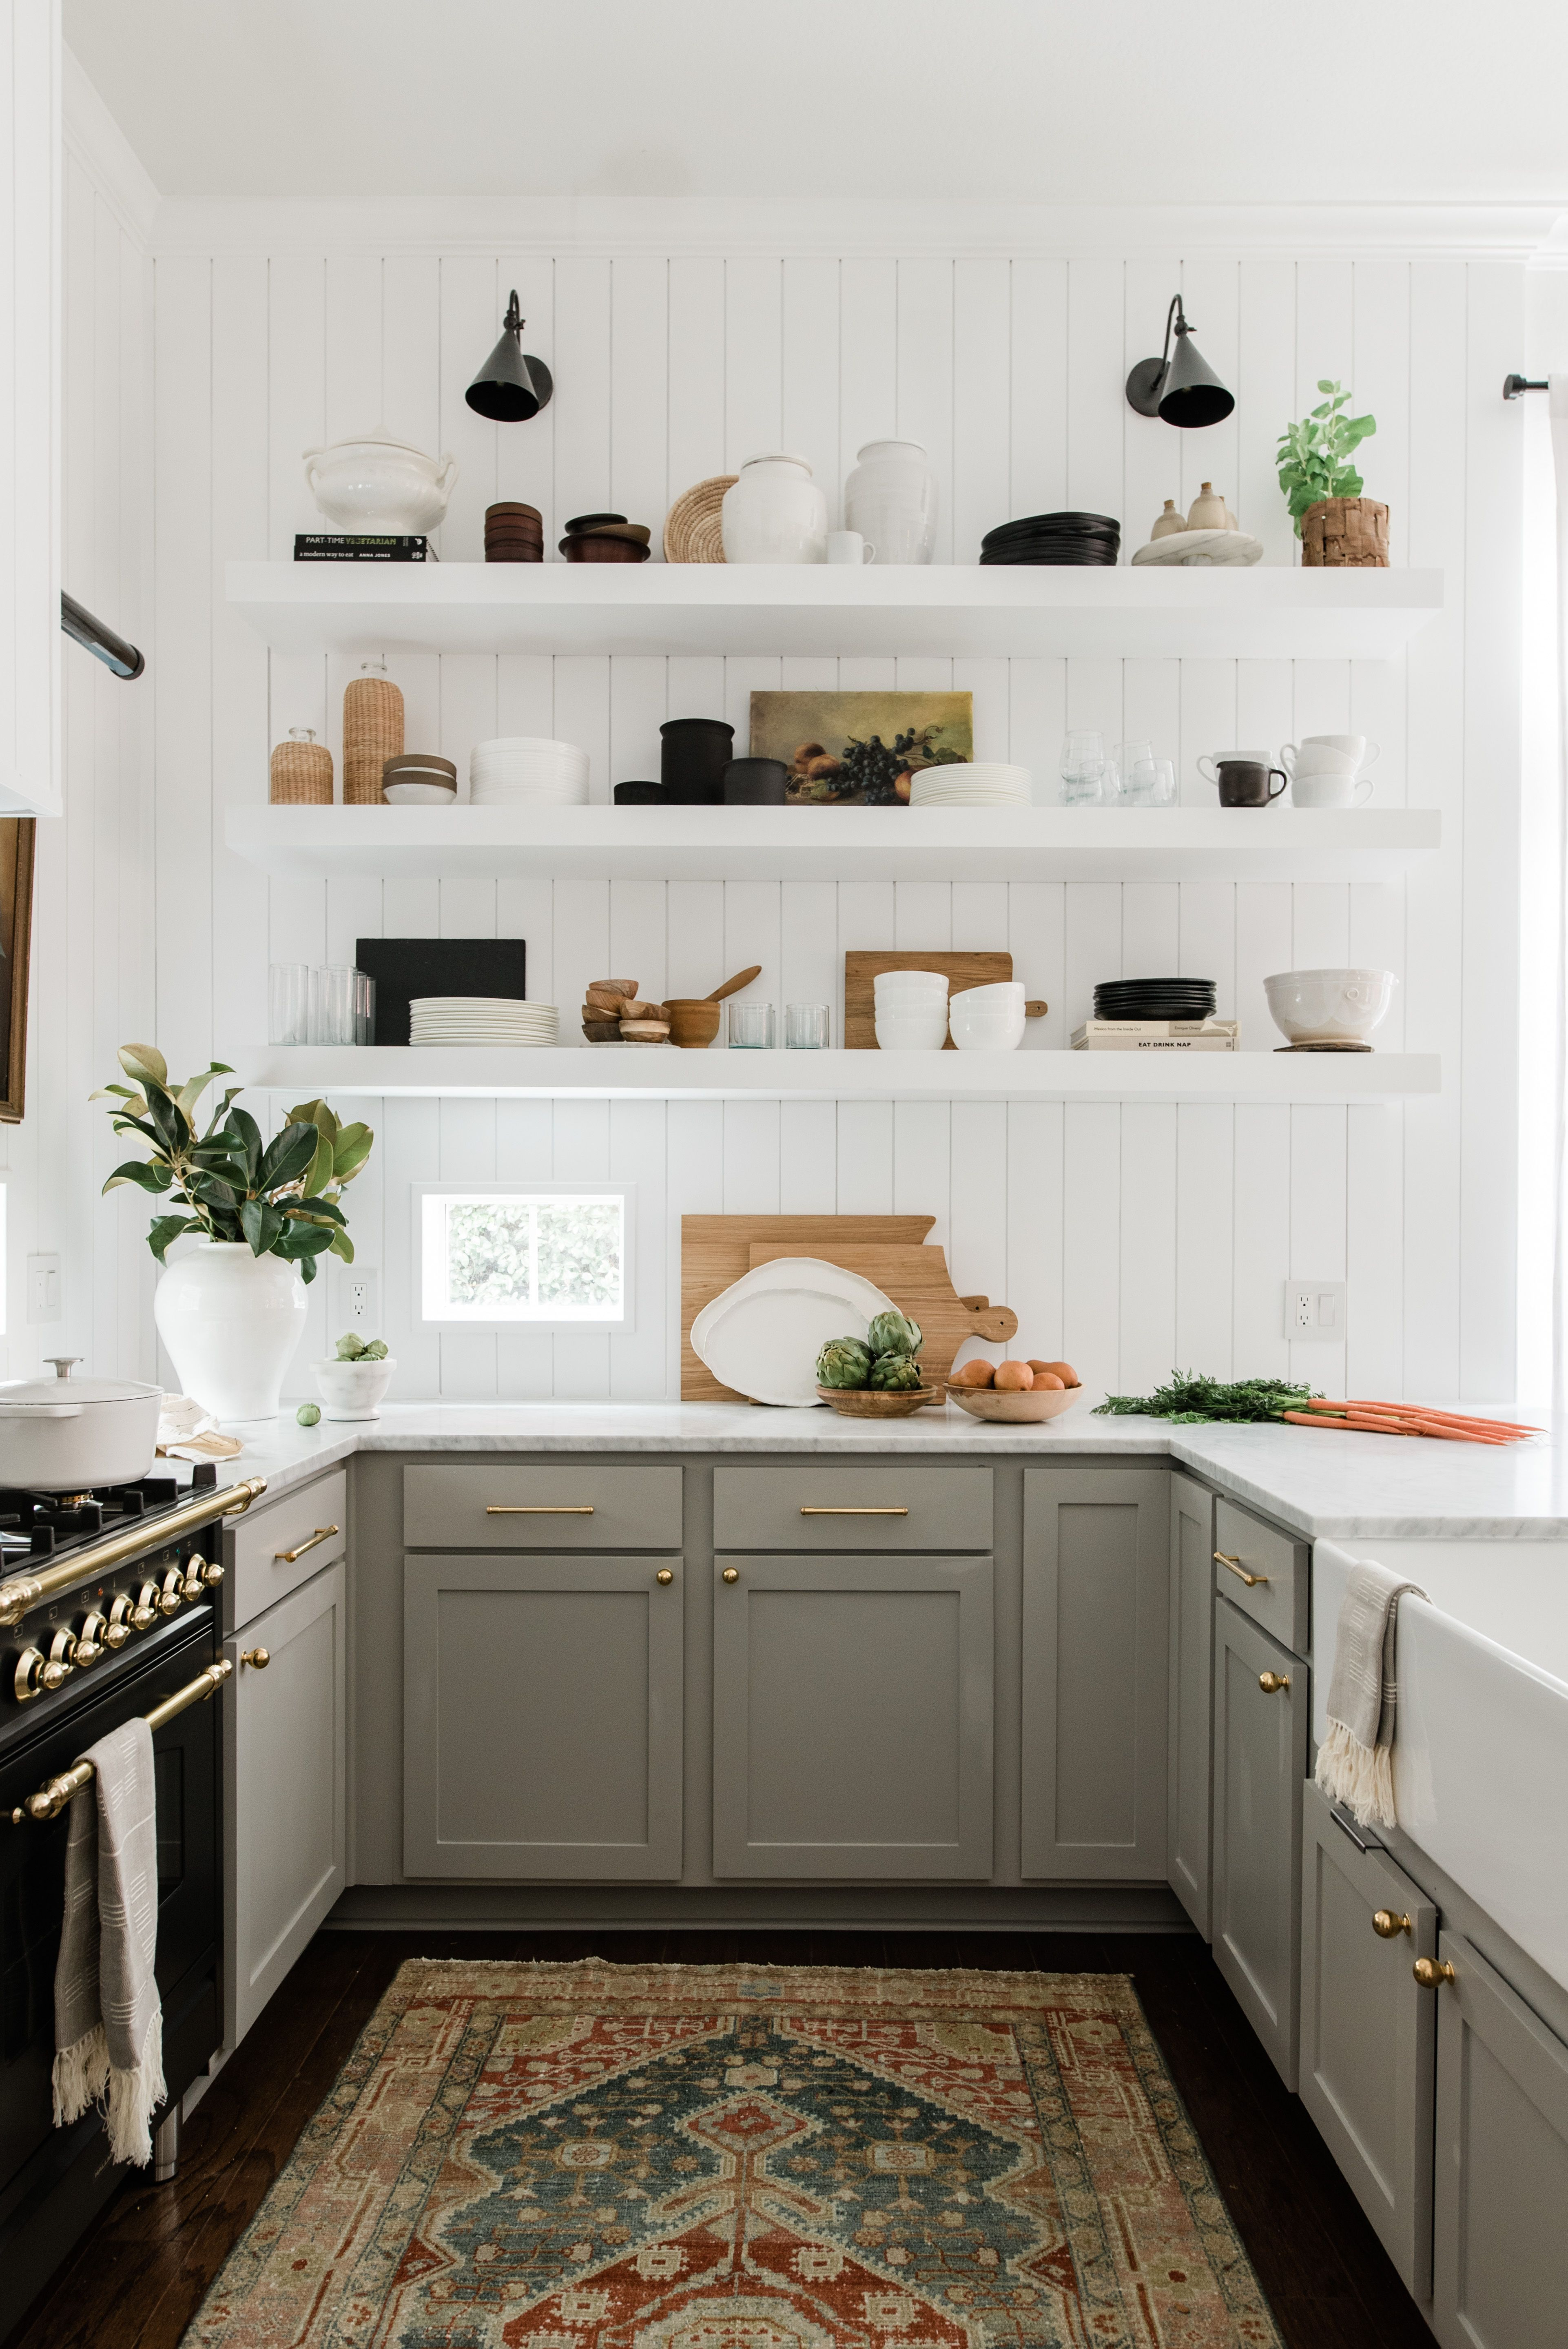 Pantry Reveal: How I Cut My Storage in Half - The